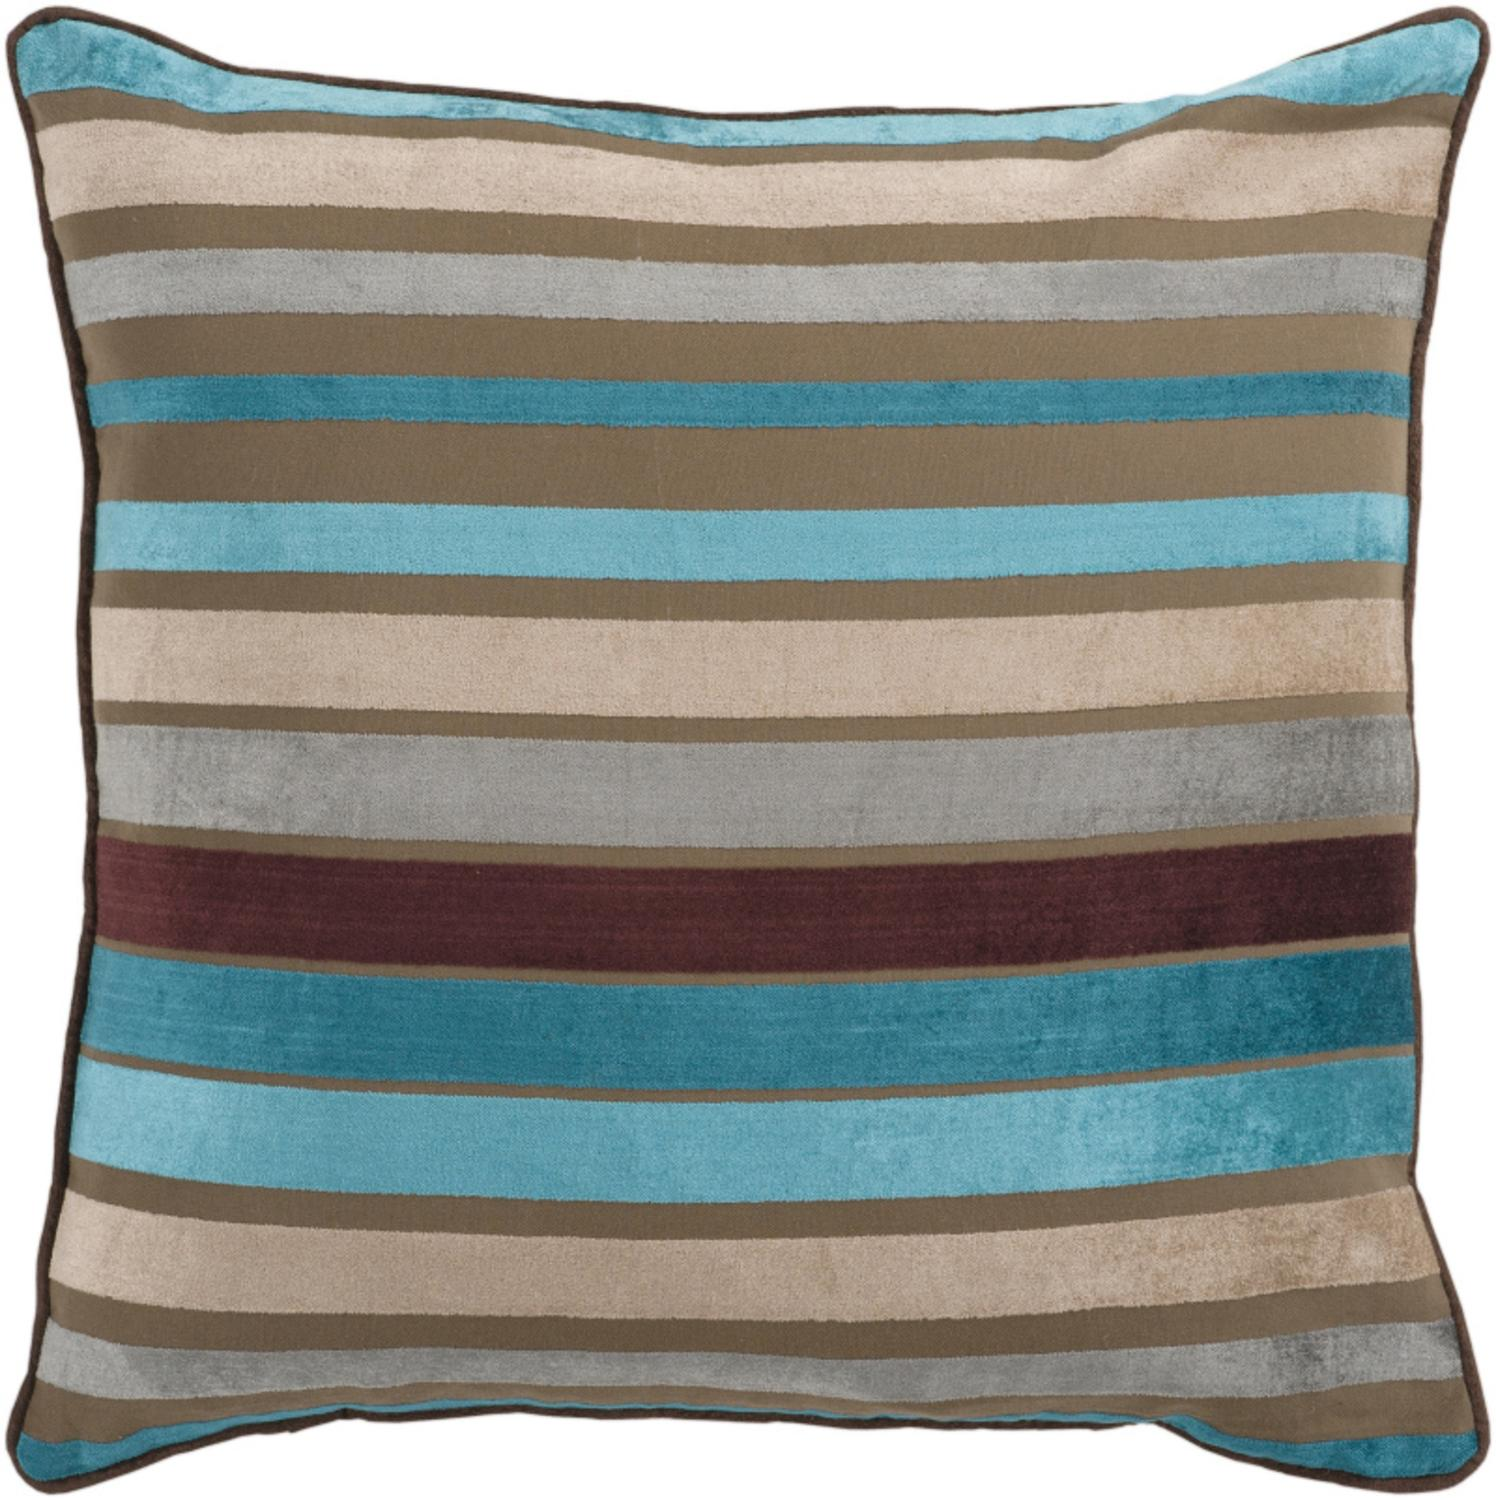 "22"" Bright and Vibrant Brown and Teal Striped Decorative Throw Pillow"